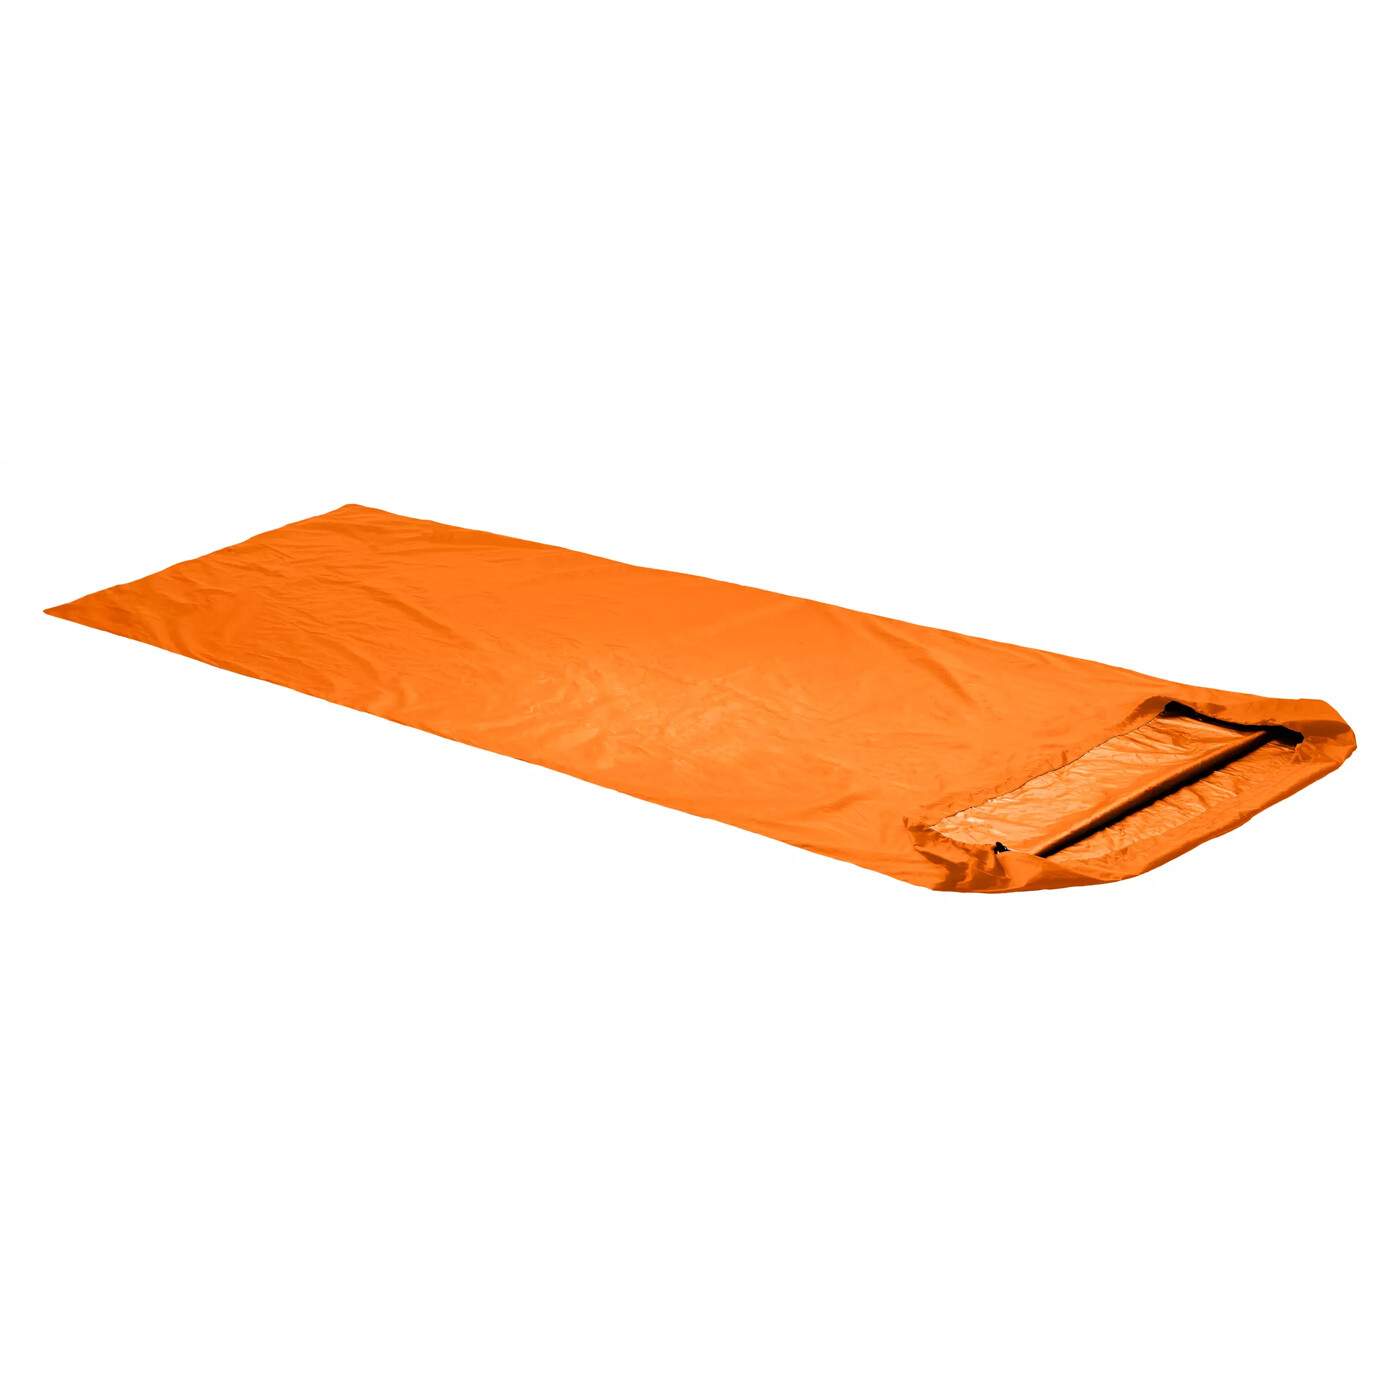 ORTOVOX BIVY SINGLE - Biwaksack